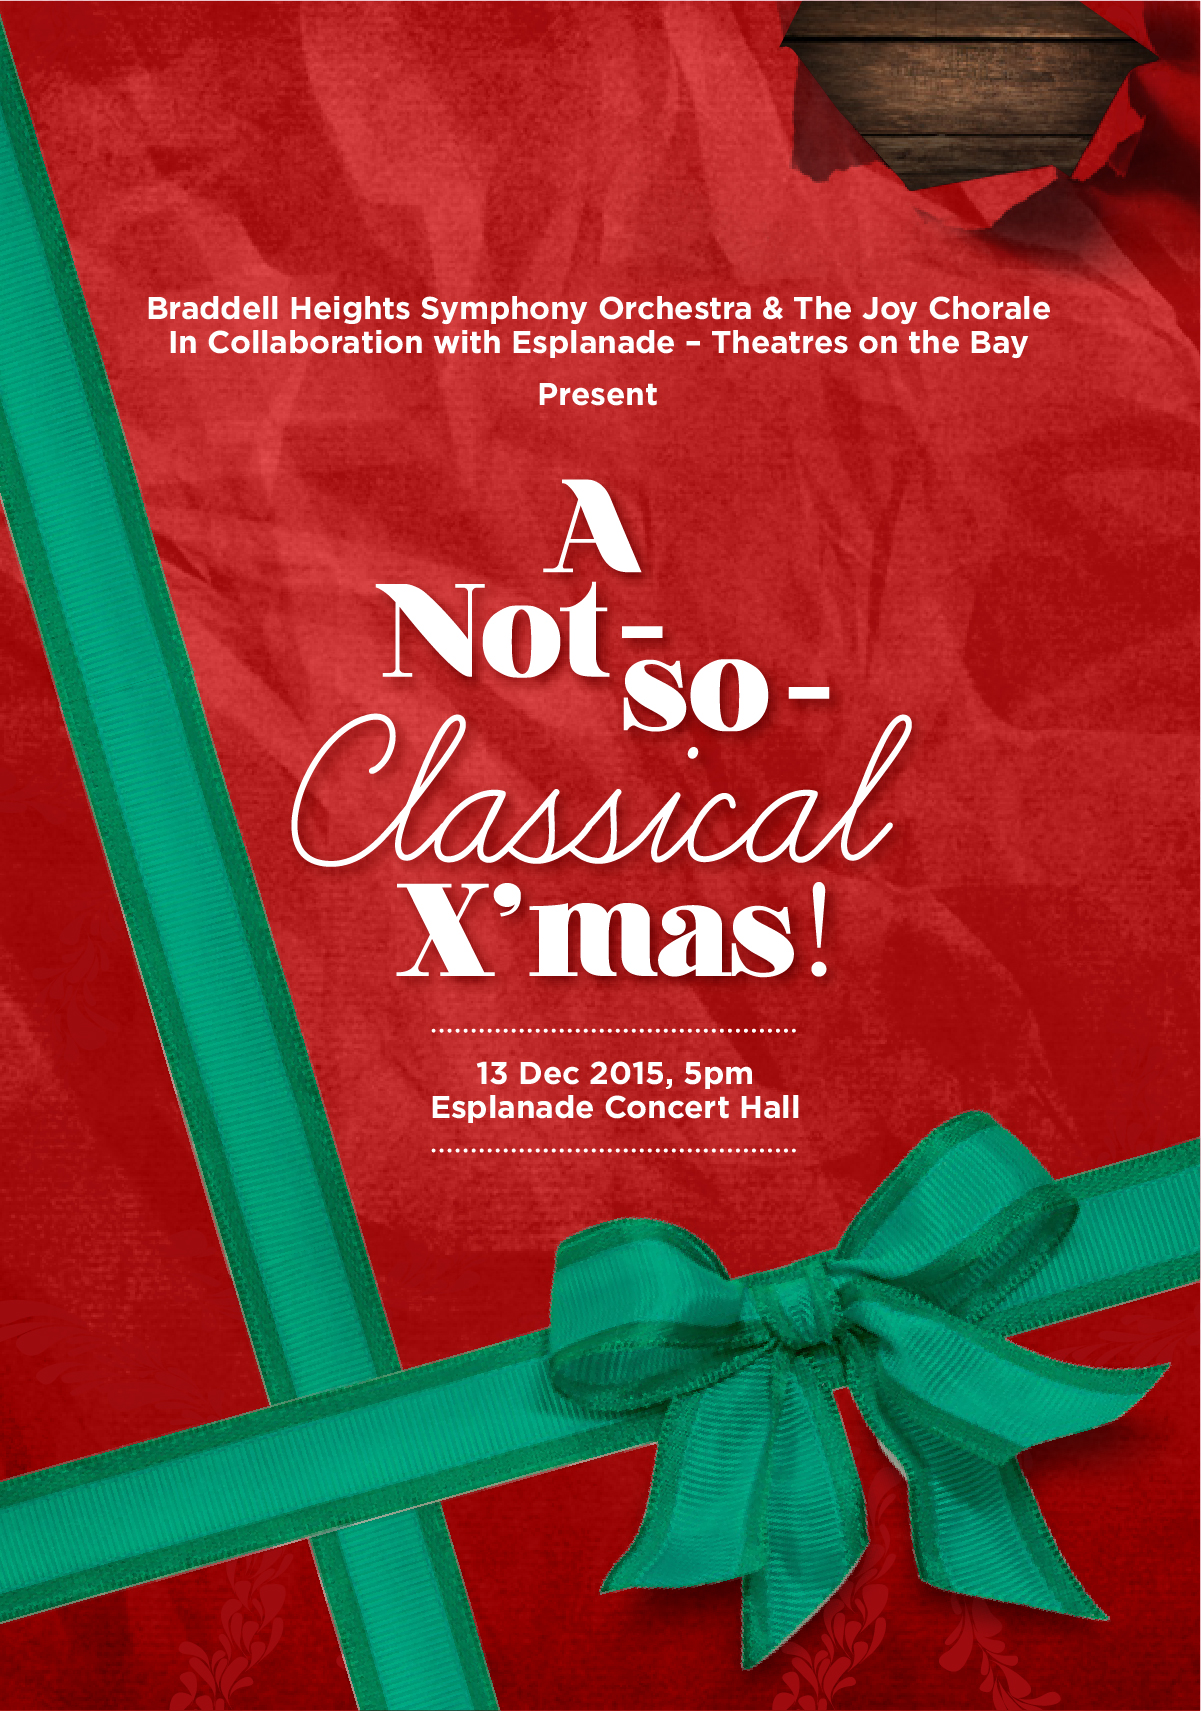 A Not So Classical X'mas (Property of BHSO)